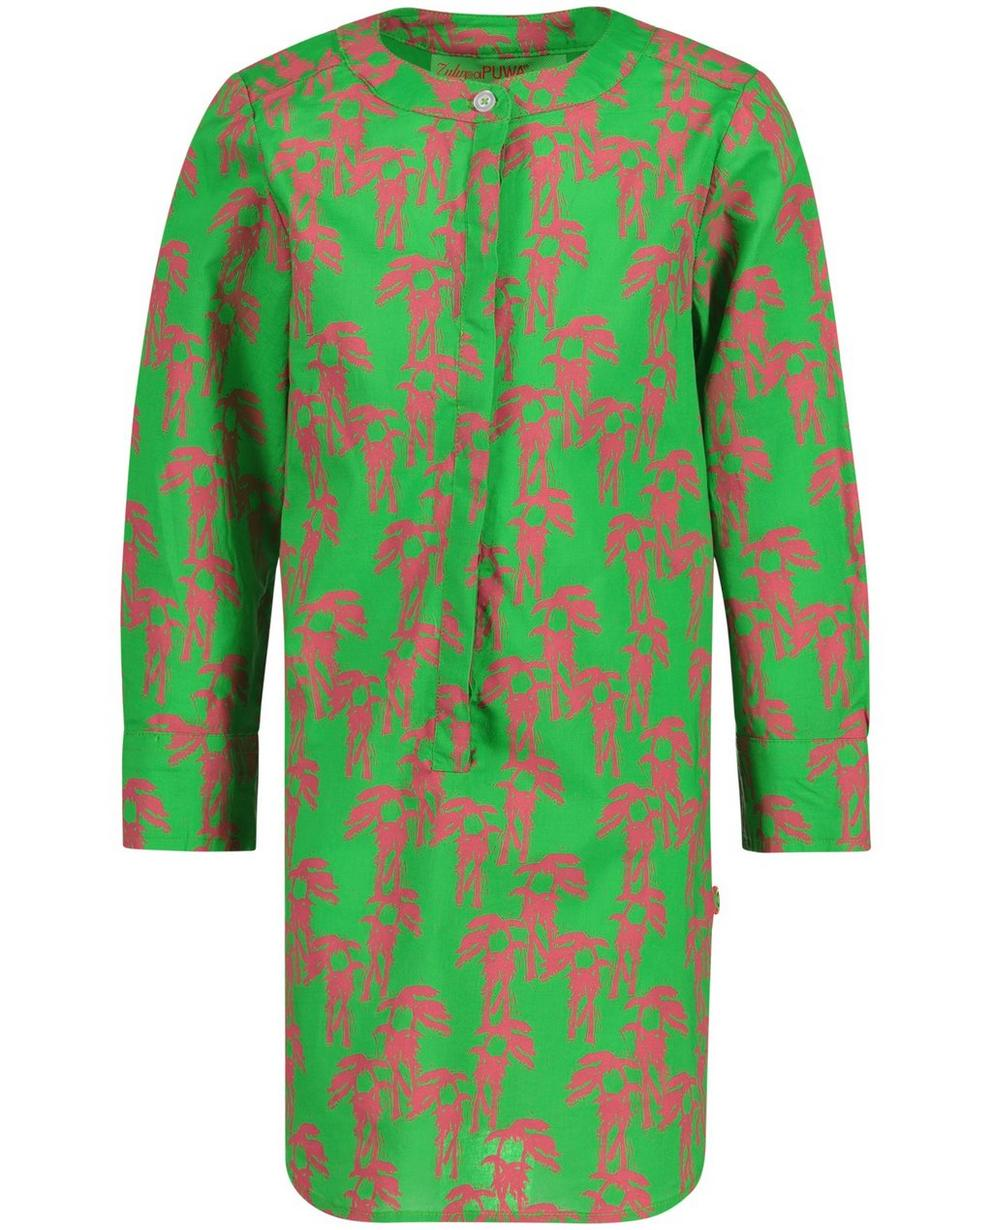 Robes - bright green - Grasgroene hemdjurk